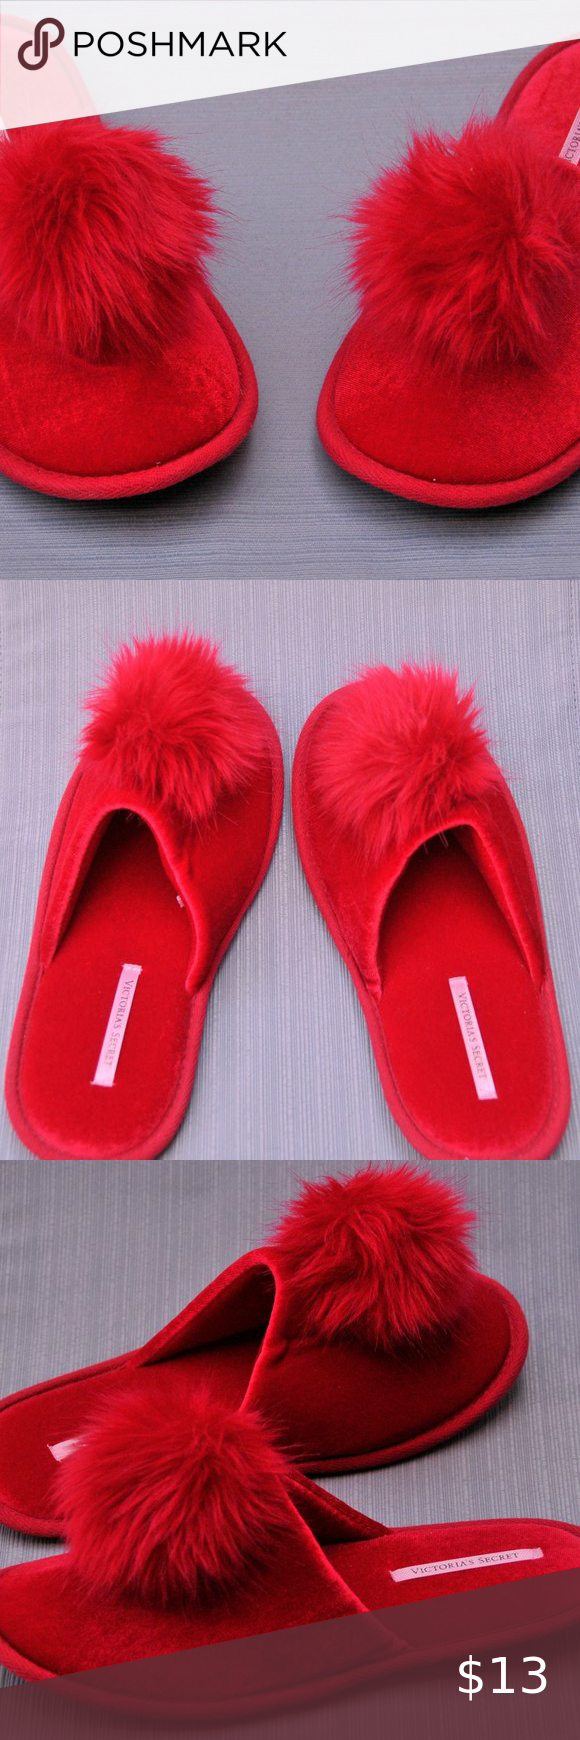 Red slippers, Victoria secret shoes